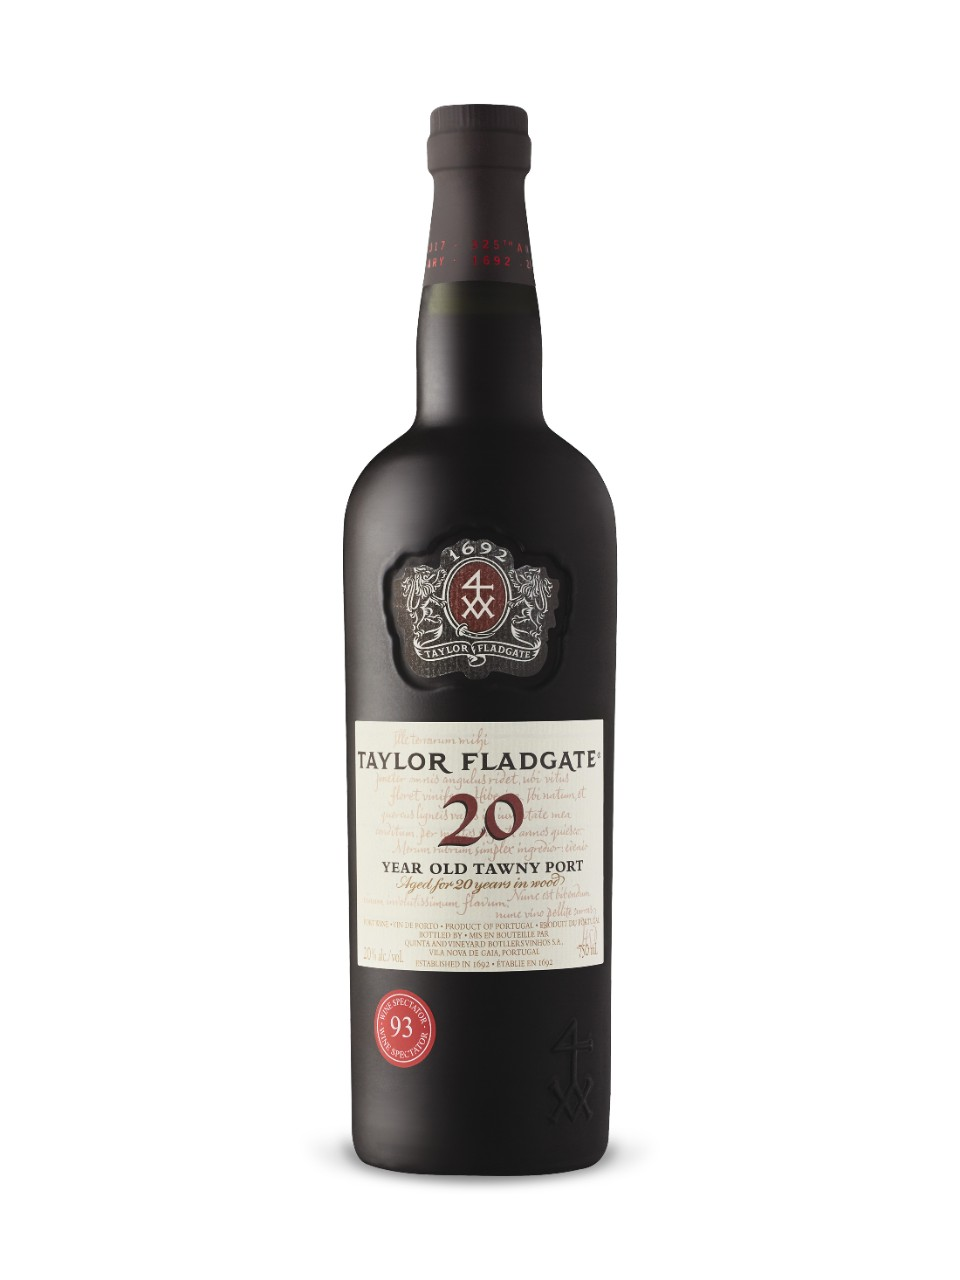 Taylor Fladgate 20-Year-Old Tawny Port from LCBO